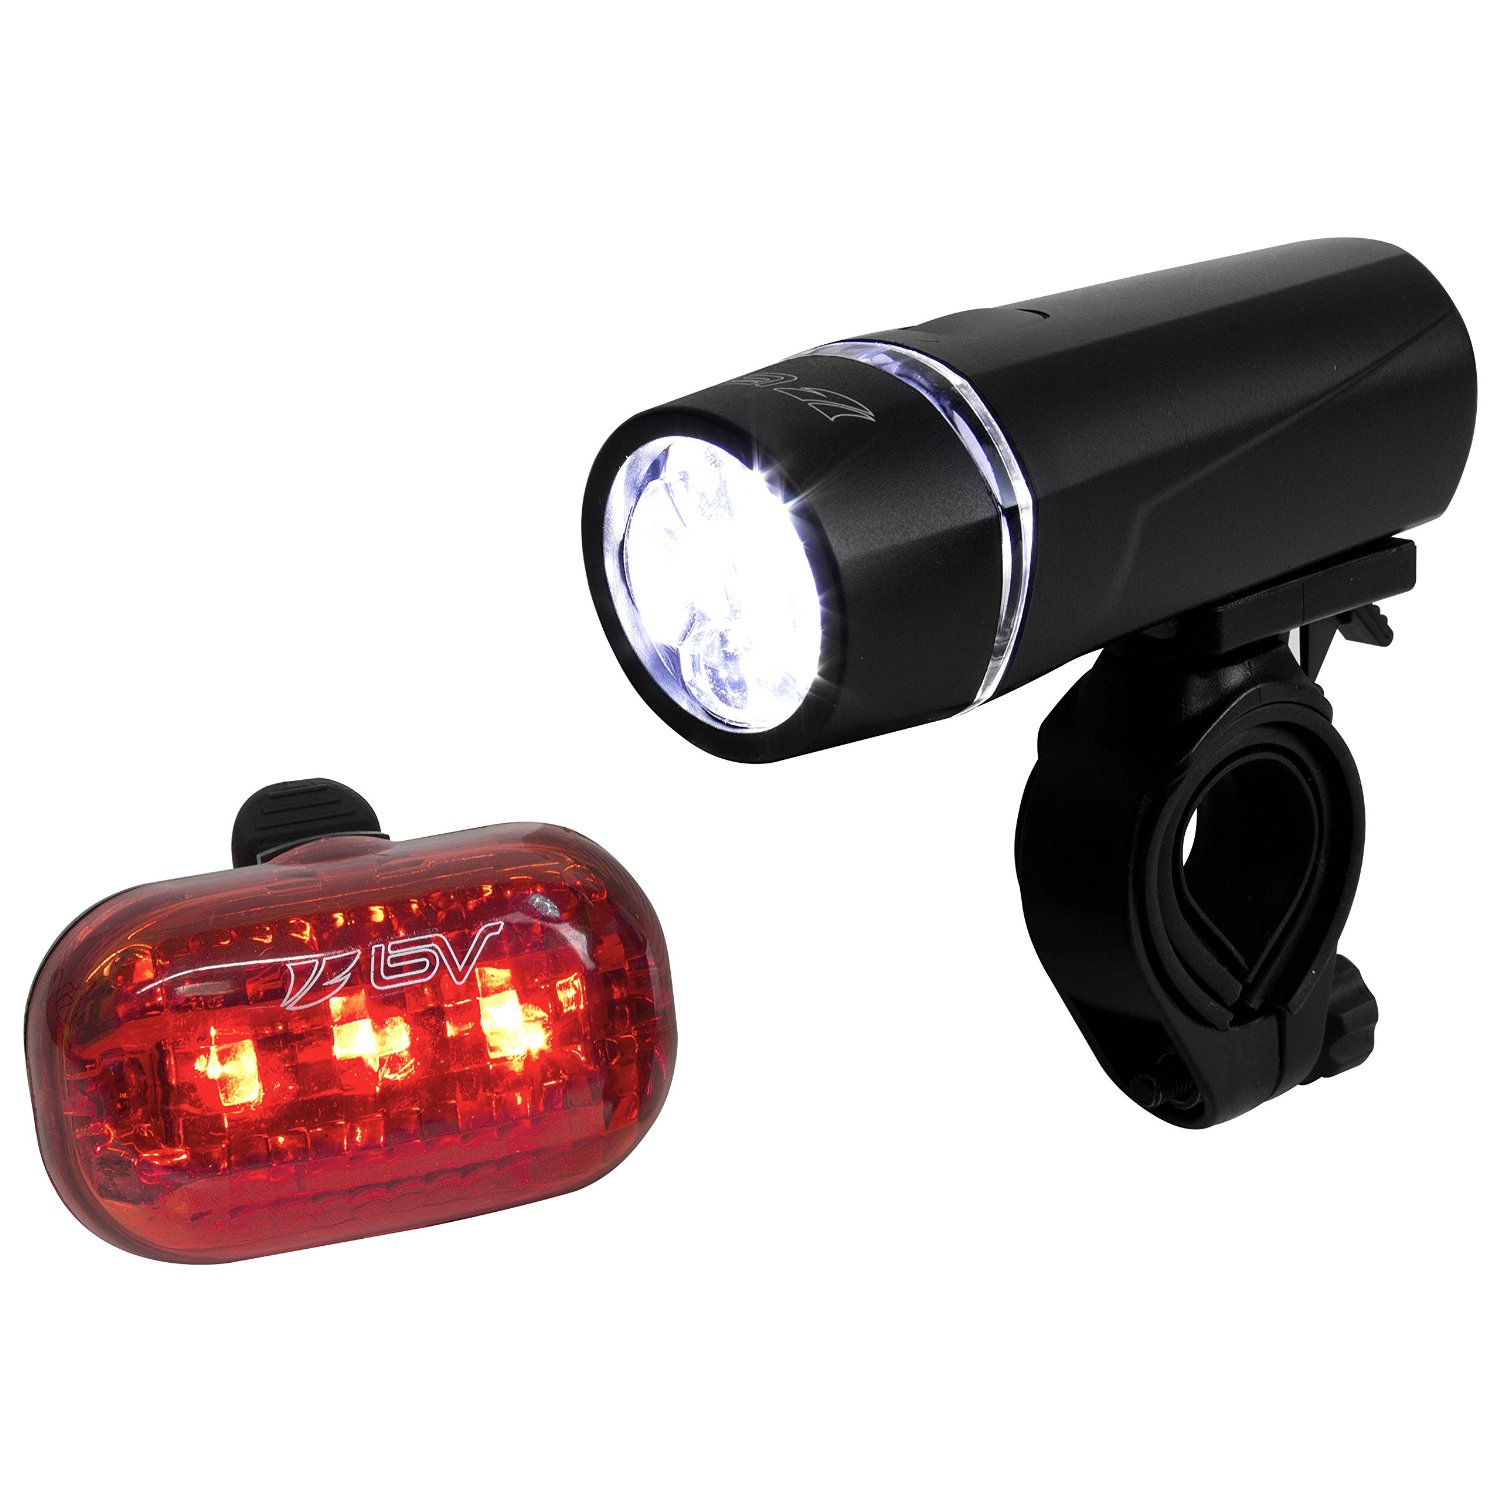 BV-Bicycle-Light-Set-Super-Bright-LED-Headlight